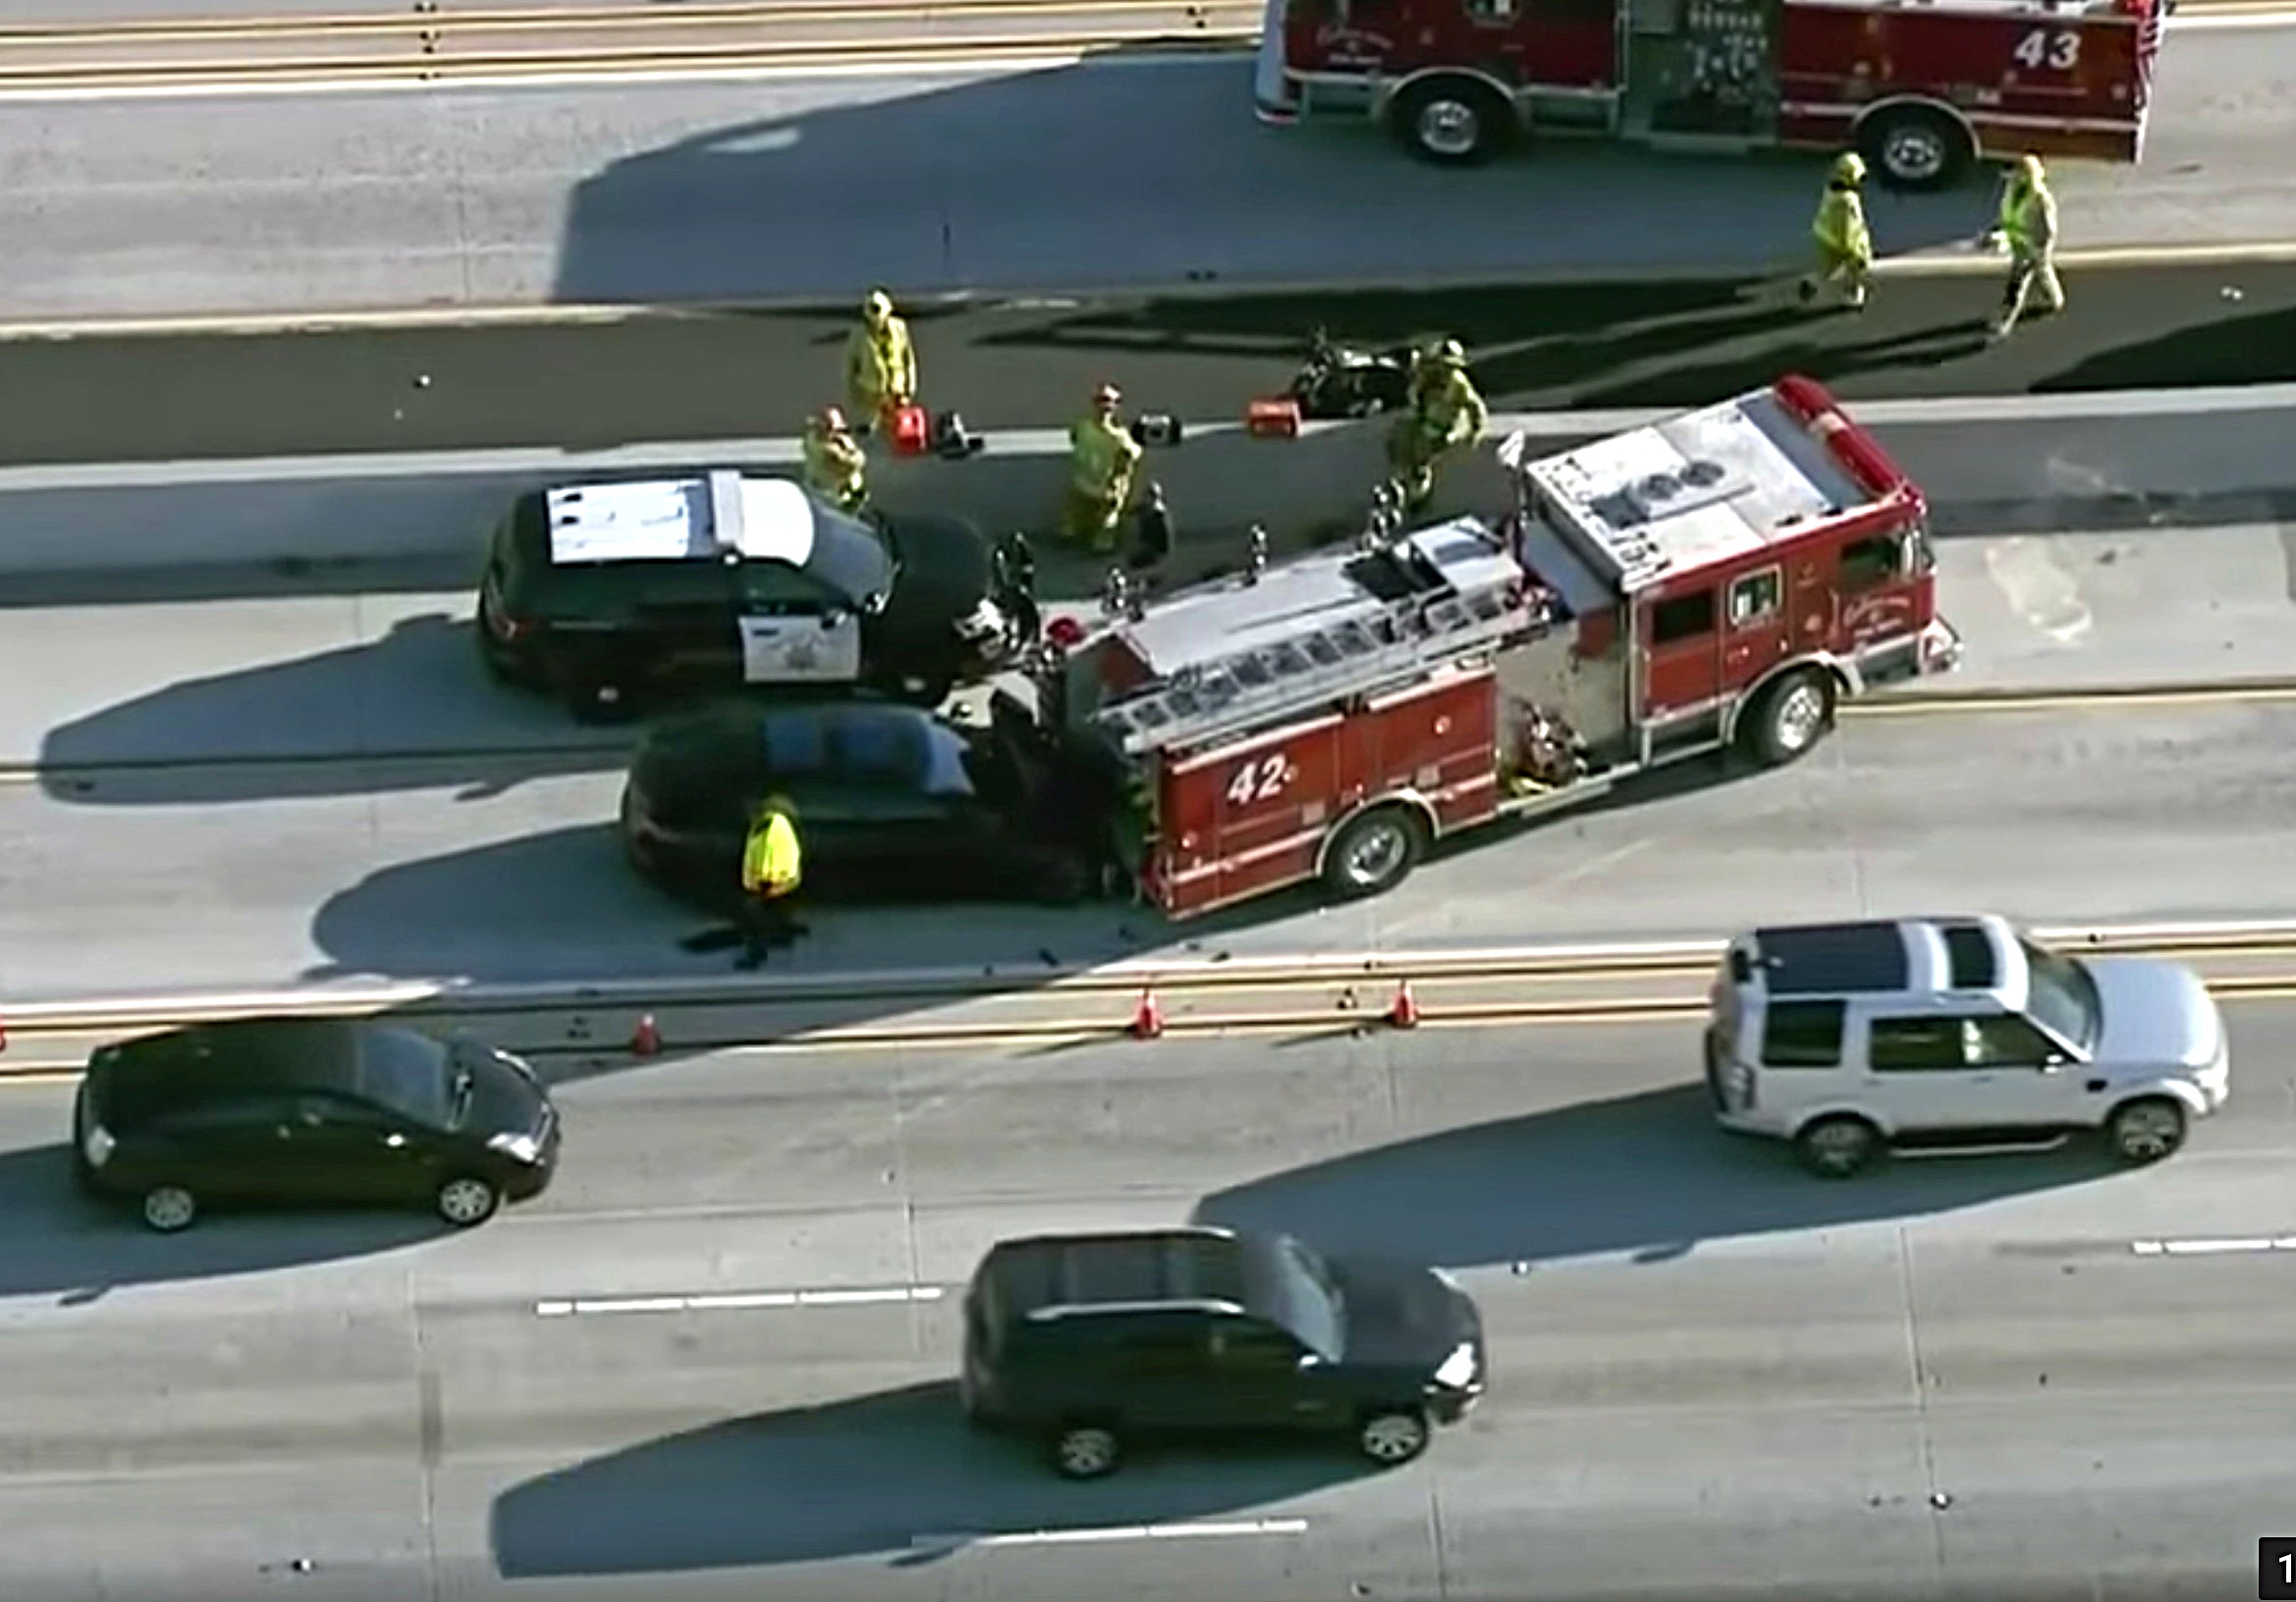 tesla-crash-fire-truck-405-los-angeles